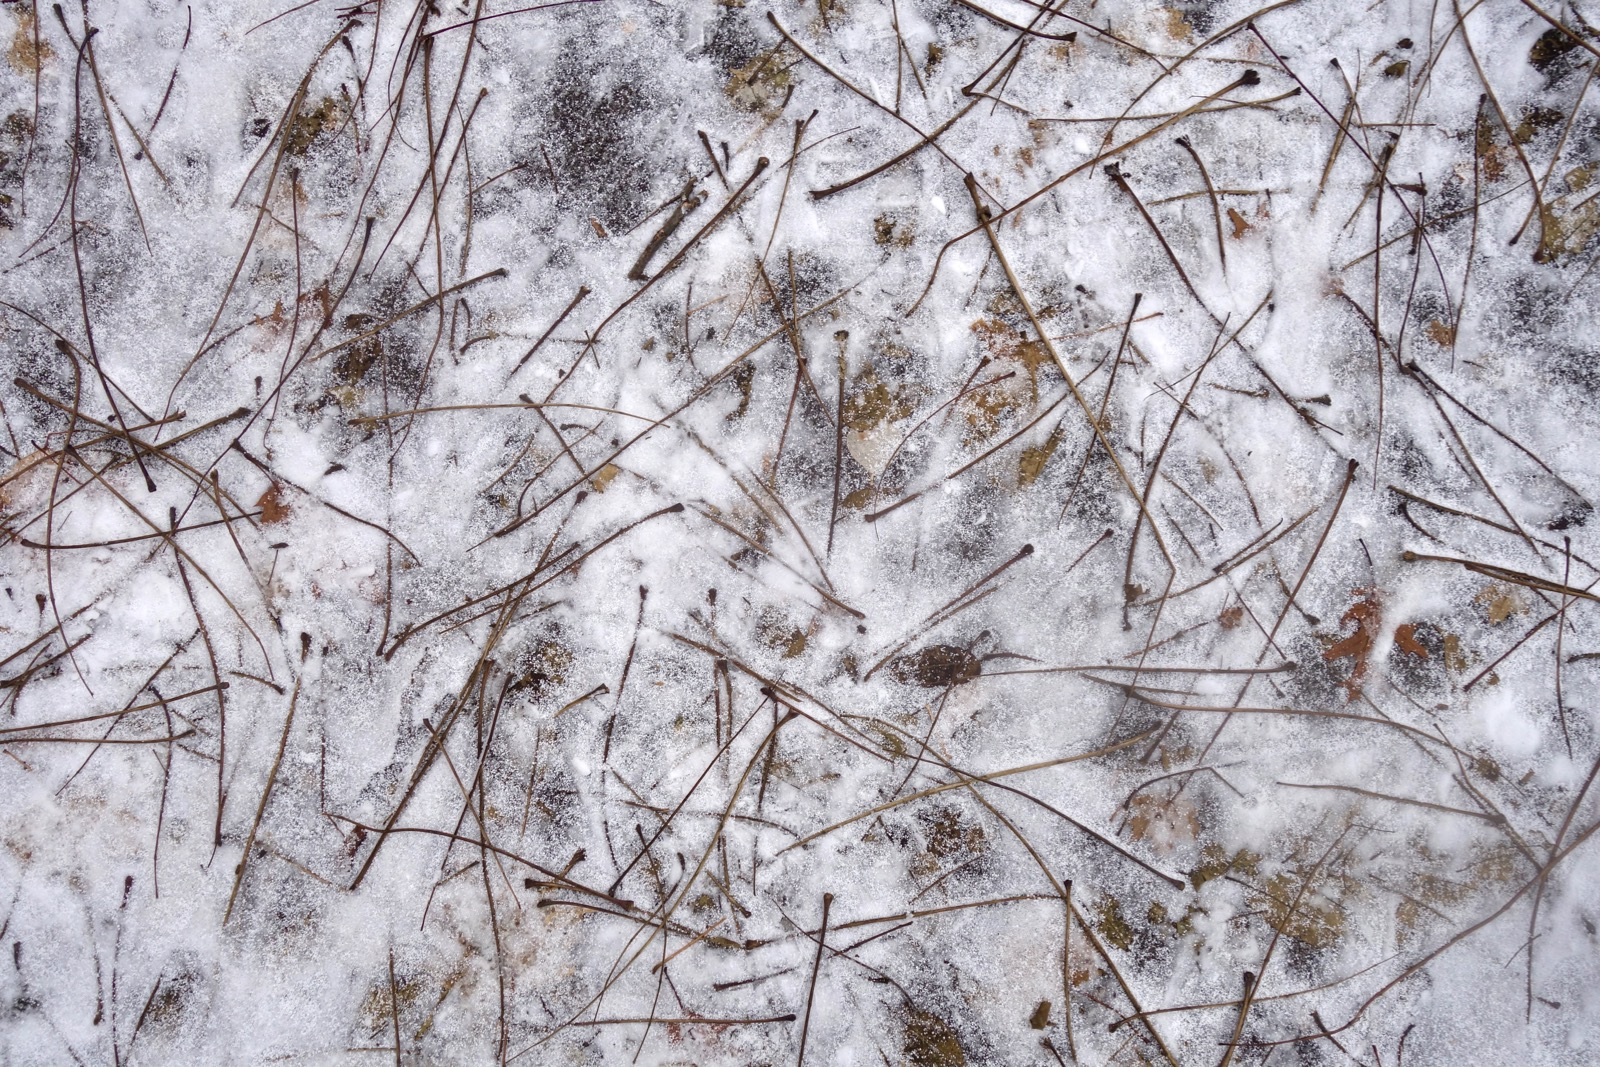 Twigs drawing on pavement with snow